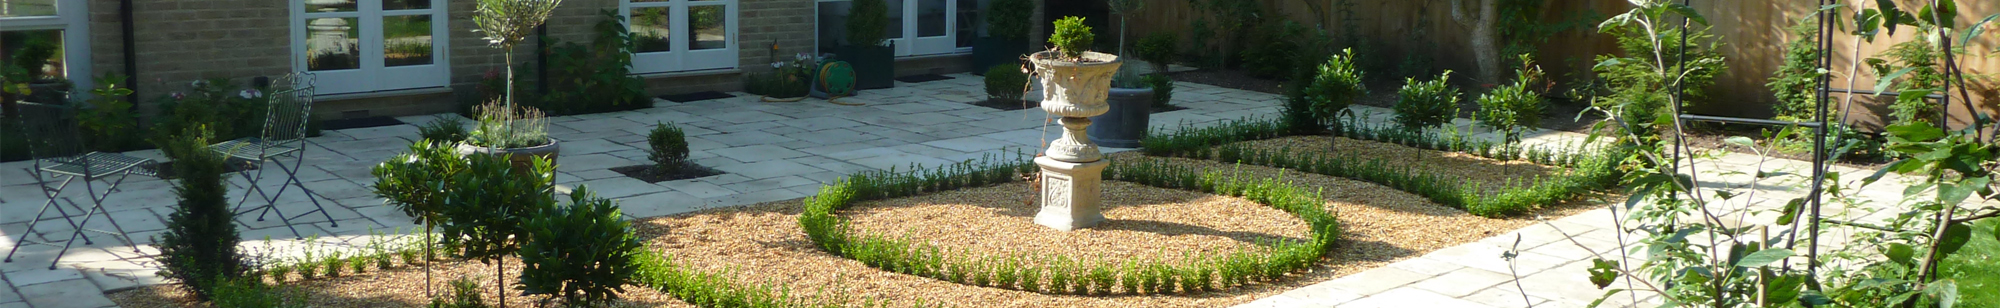 new garden with statue